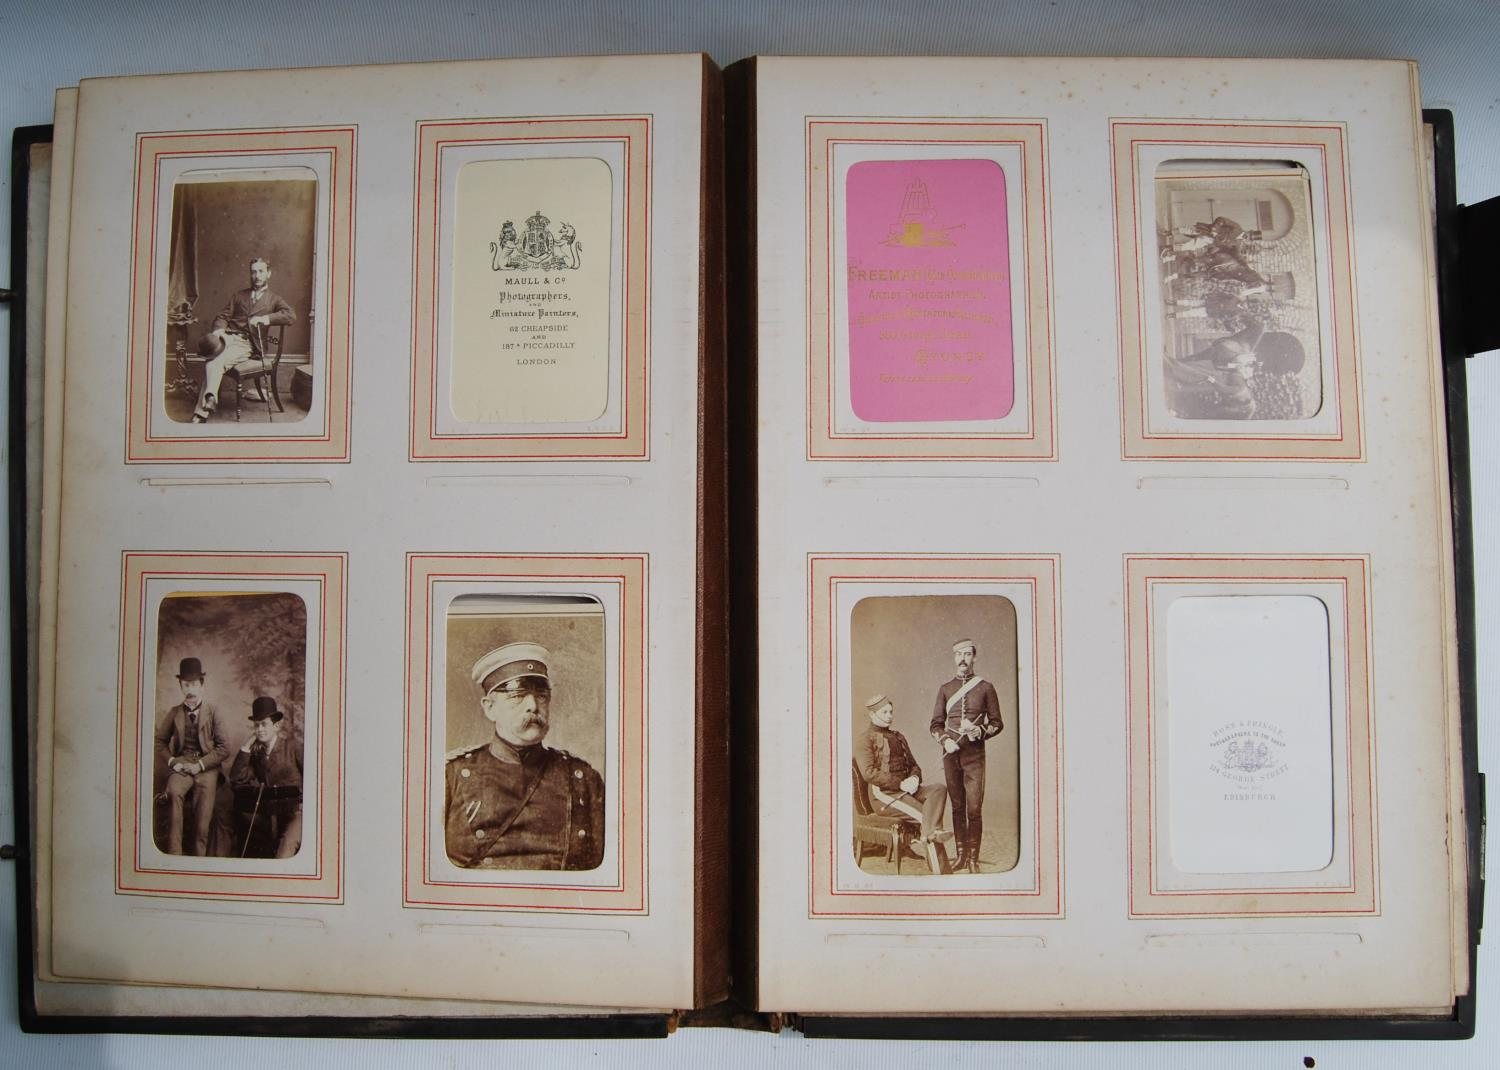 Victorian photograph album belong to Harden Burnley, signed 1870, comprising of royalty, officers - Image 8 of 10